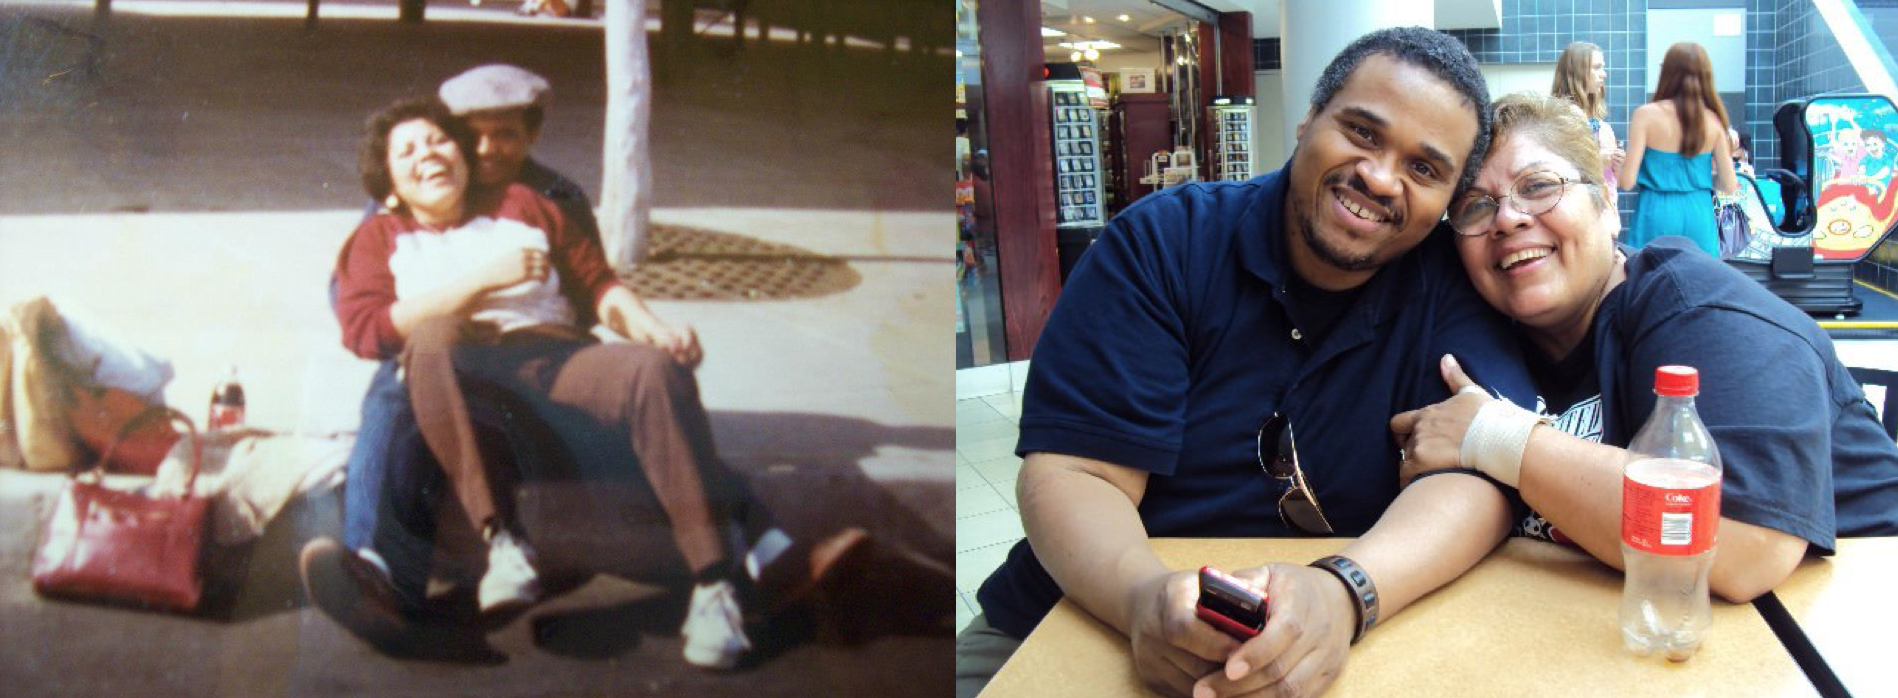 Left: My parents during their courtship in the 1980's; Right: My parents a few years ago during a visit to Chicago.